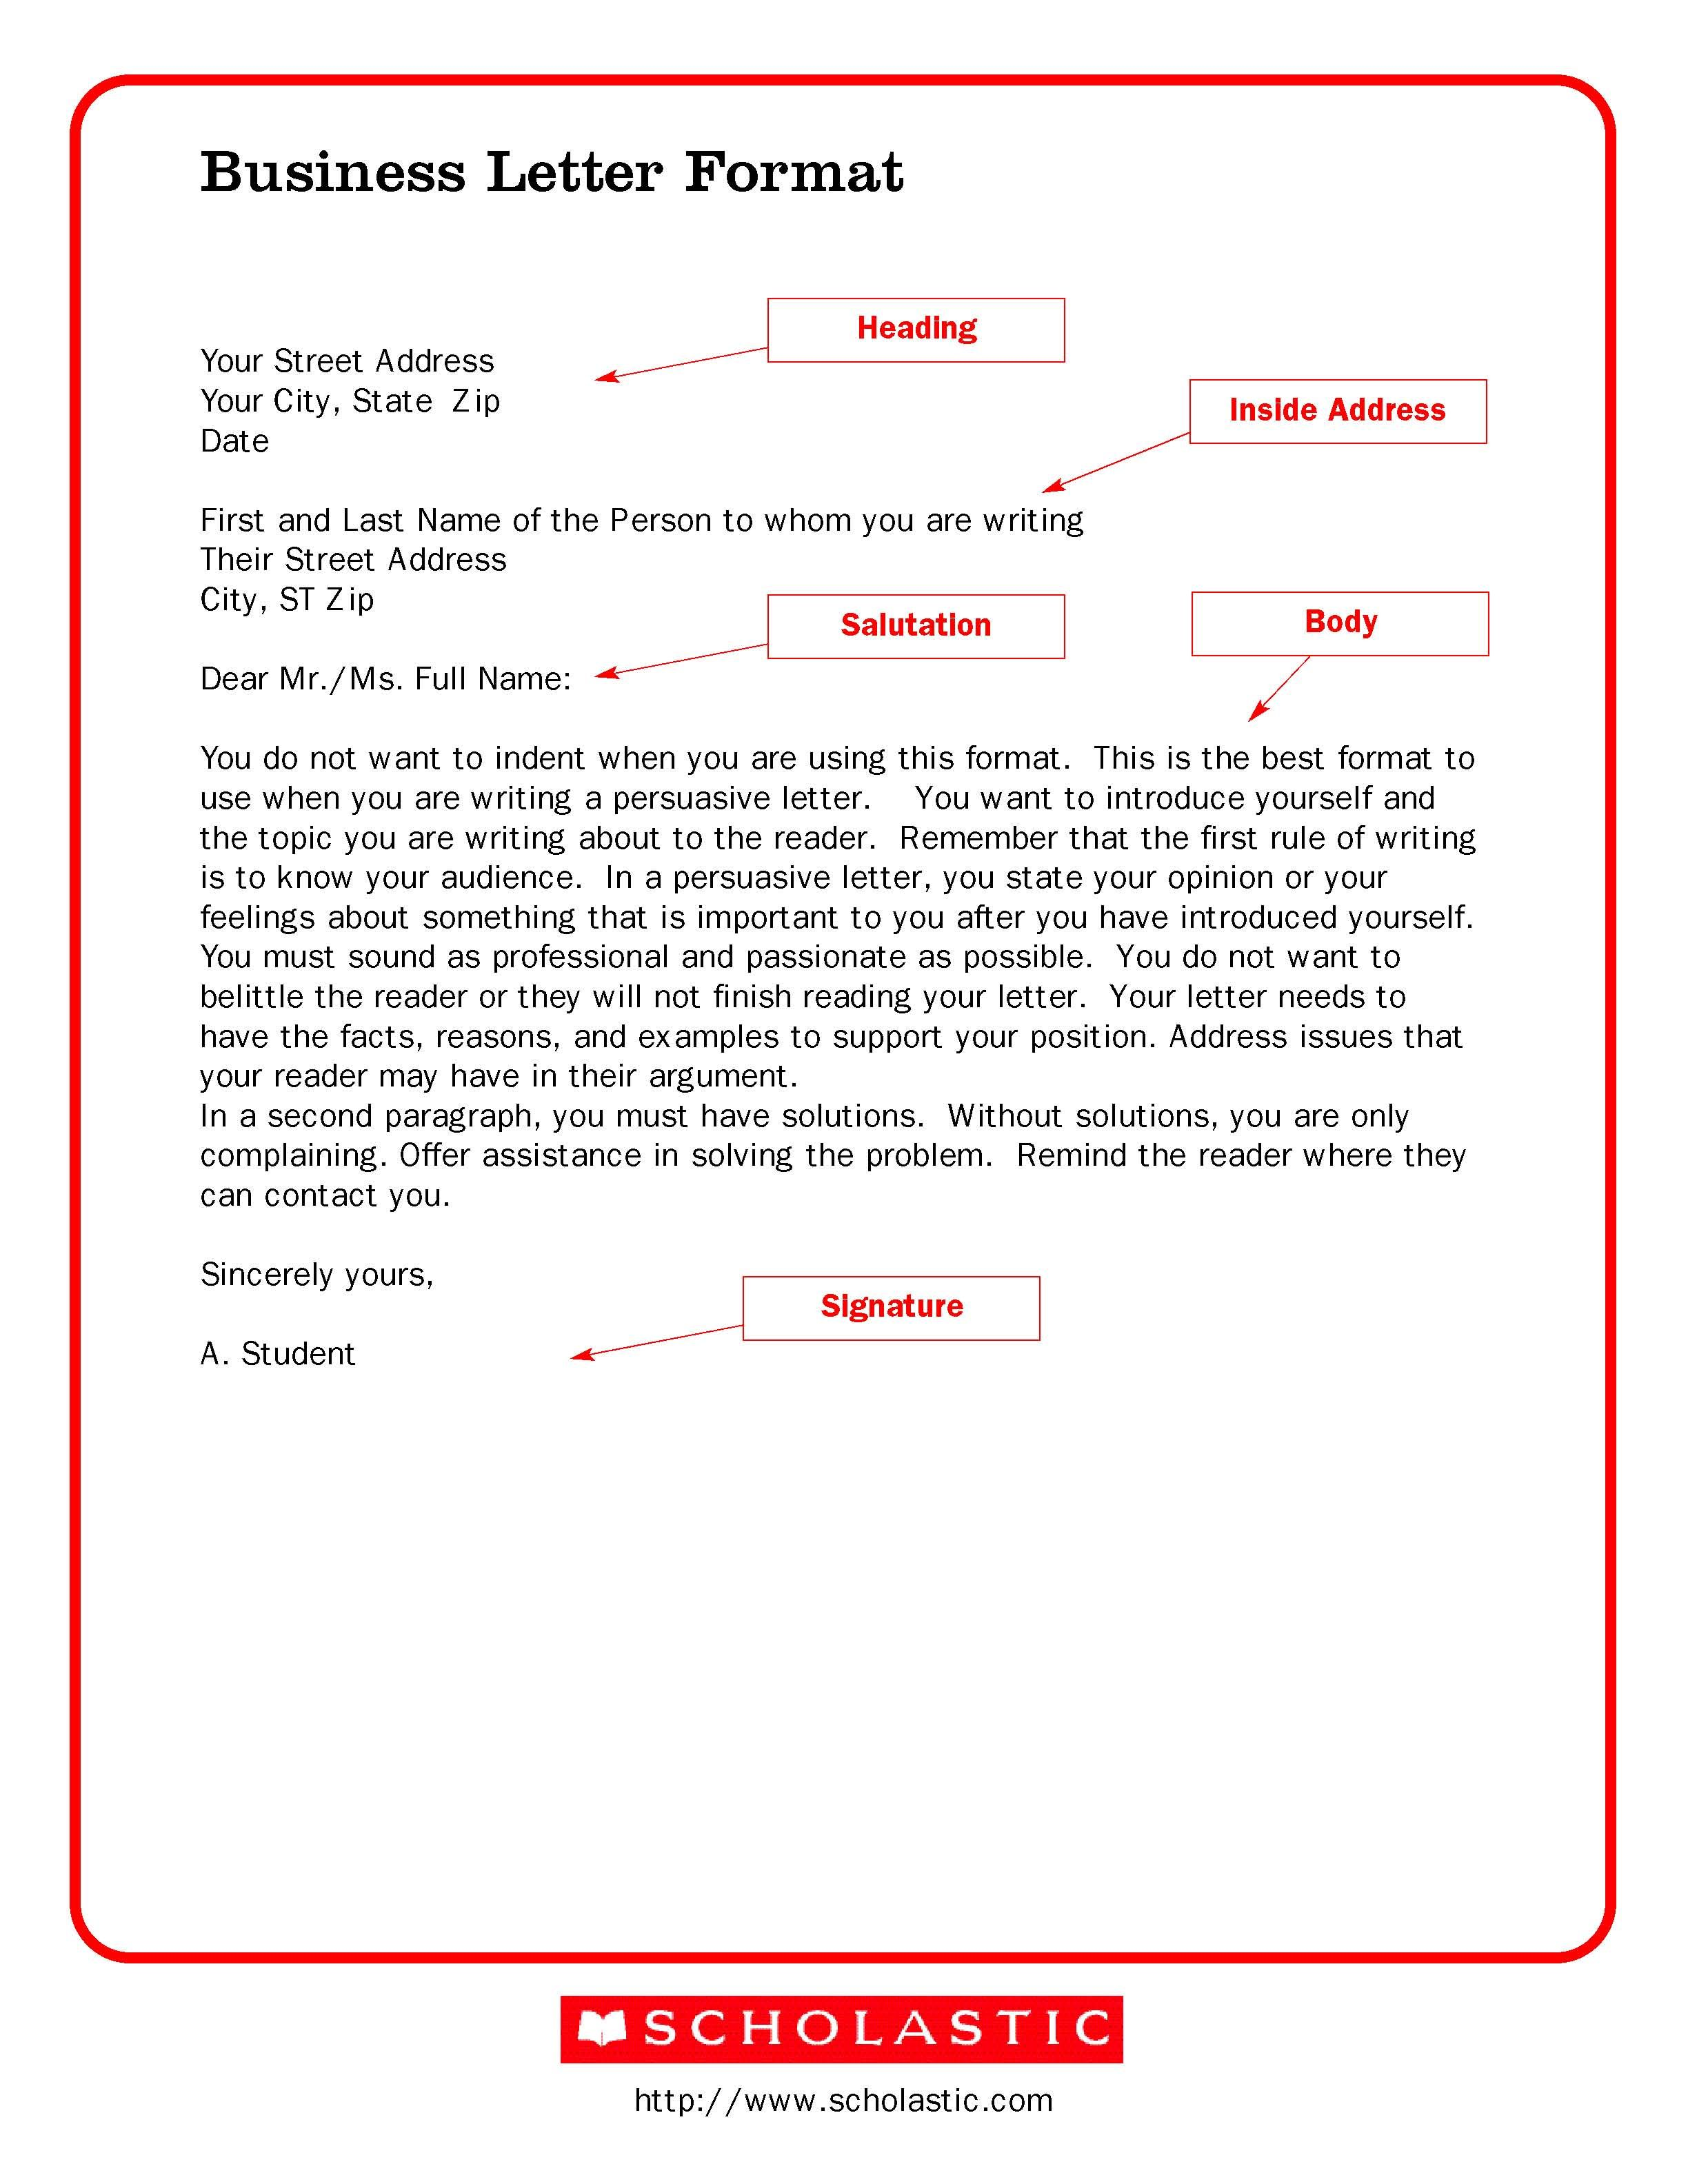 Business letter format template pdf 26 resignation letter templates free word excel pdf spiritdancerdesigns Choice Image